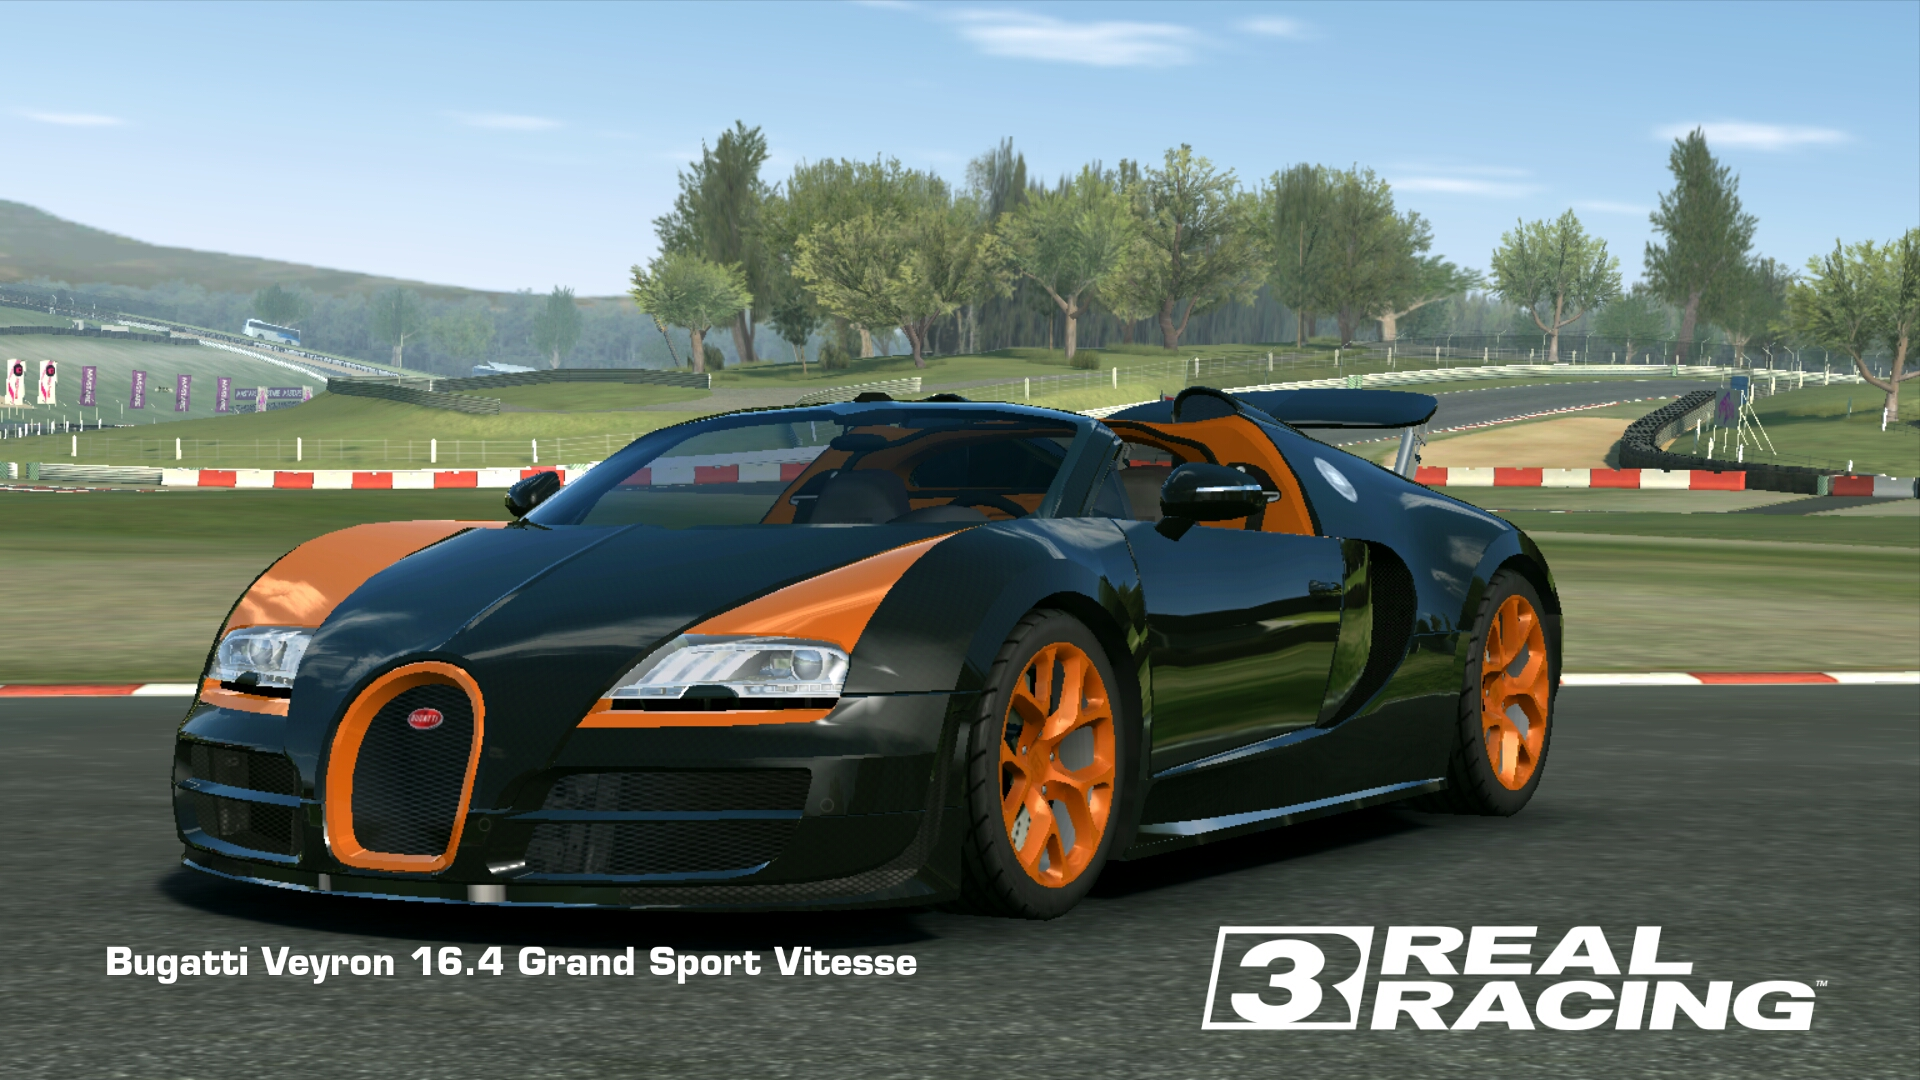 Showcase Bugatti Veyron 16.4 Grand Sport Vitesse